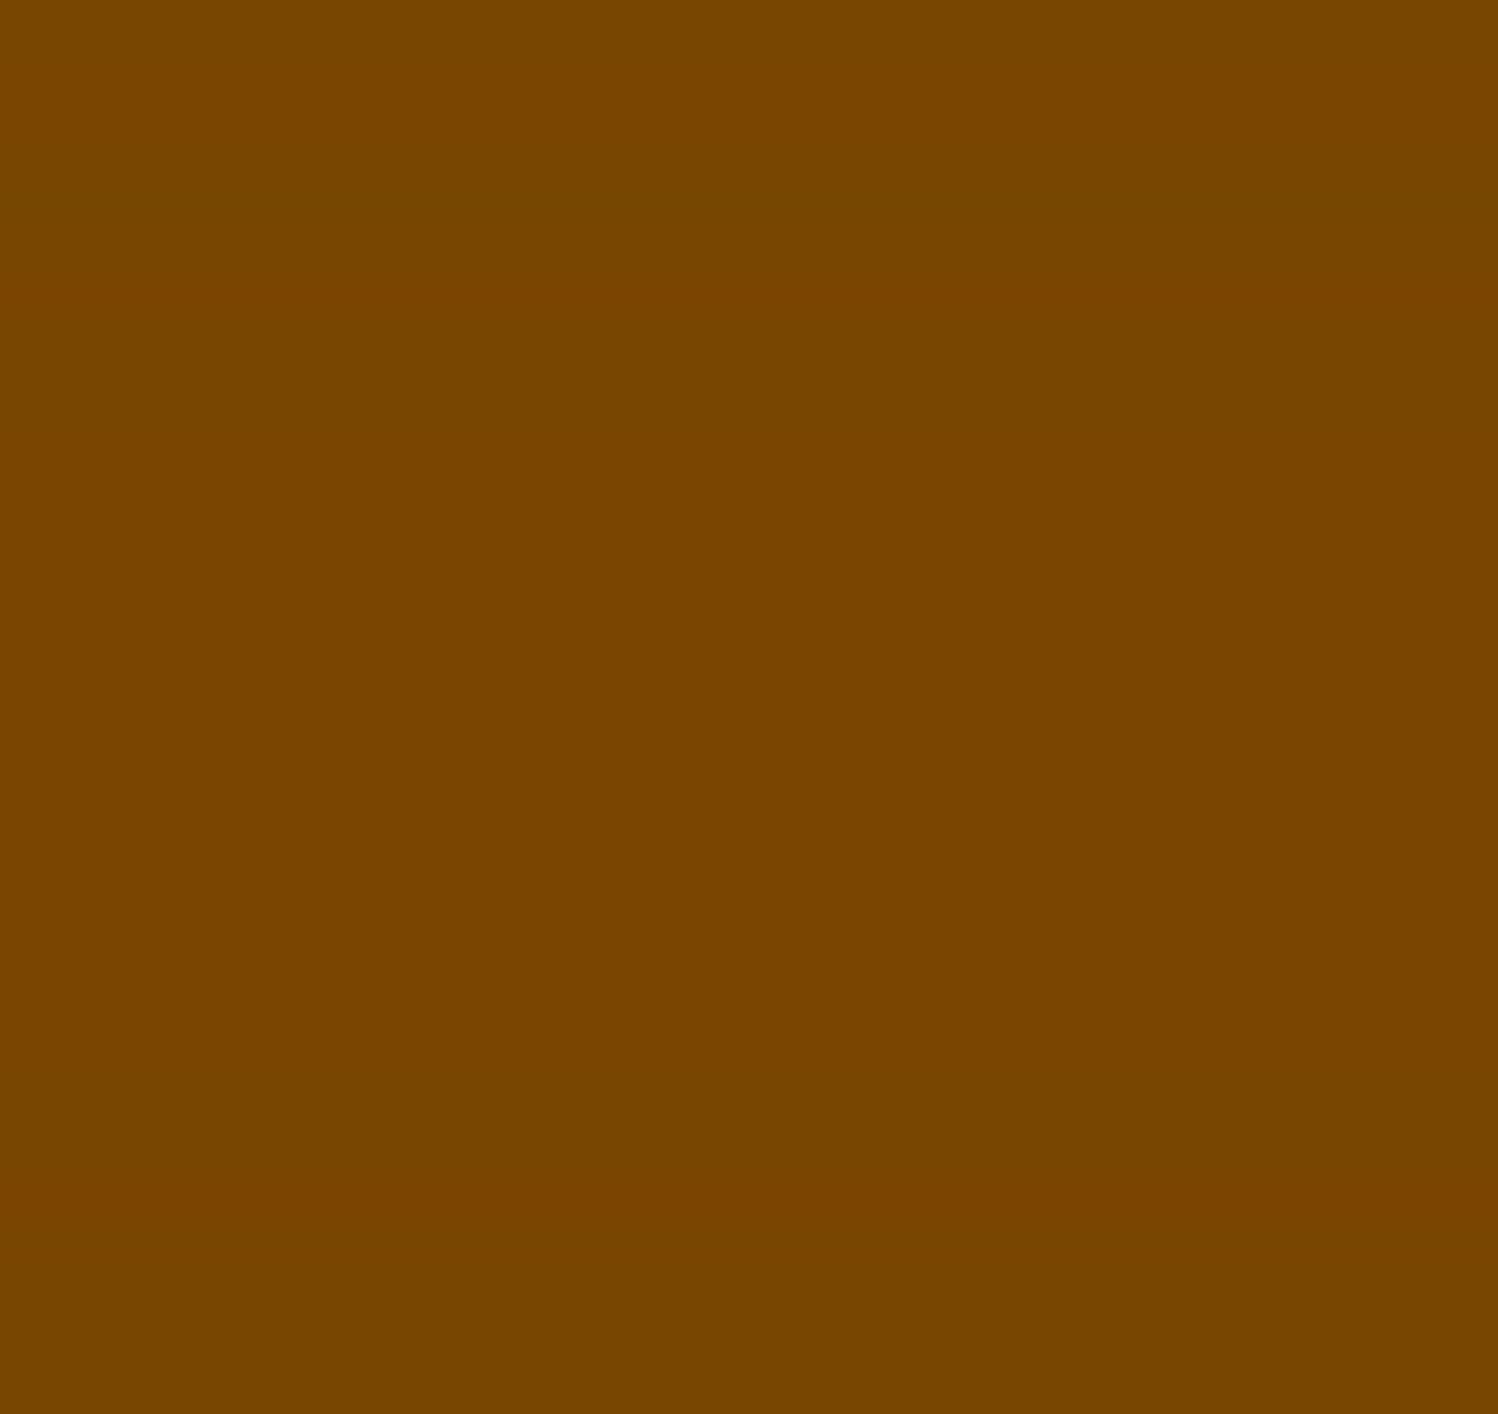 American & Efird Signature 50 Cotton Solid Colors 700 Yards-Spiced Tea